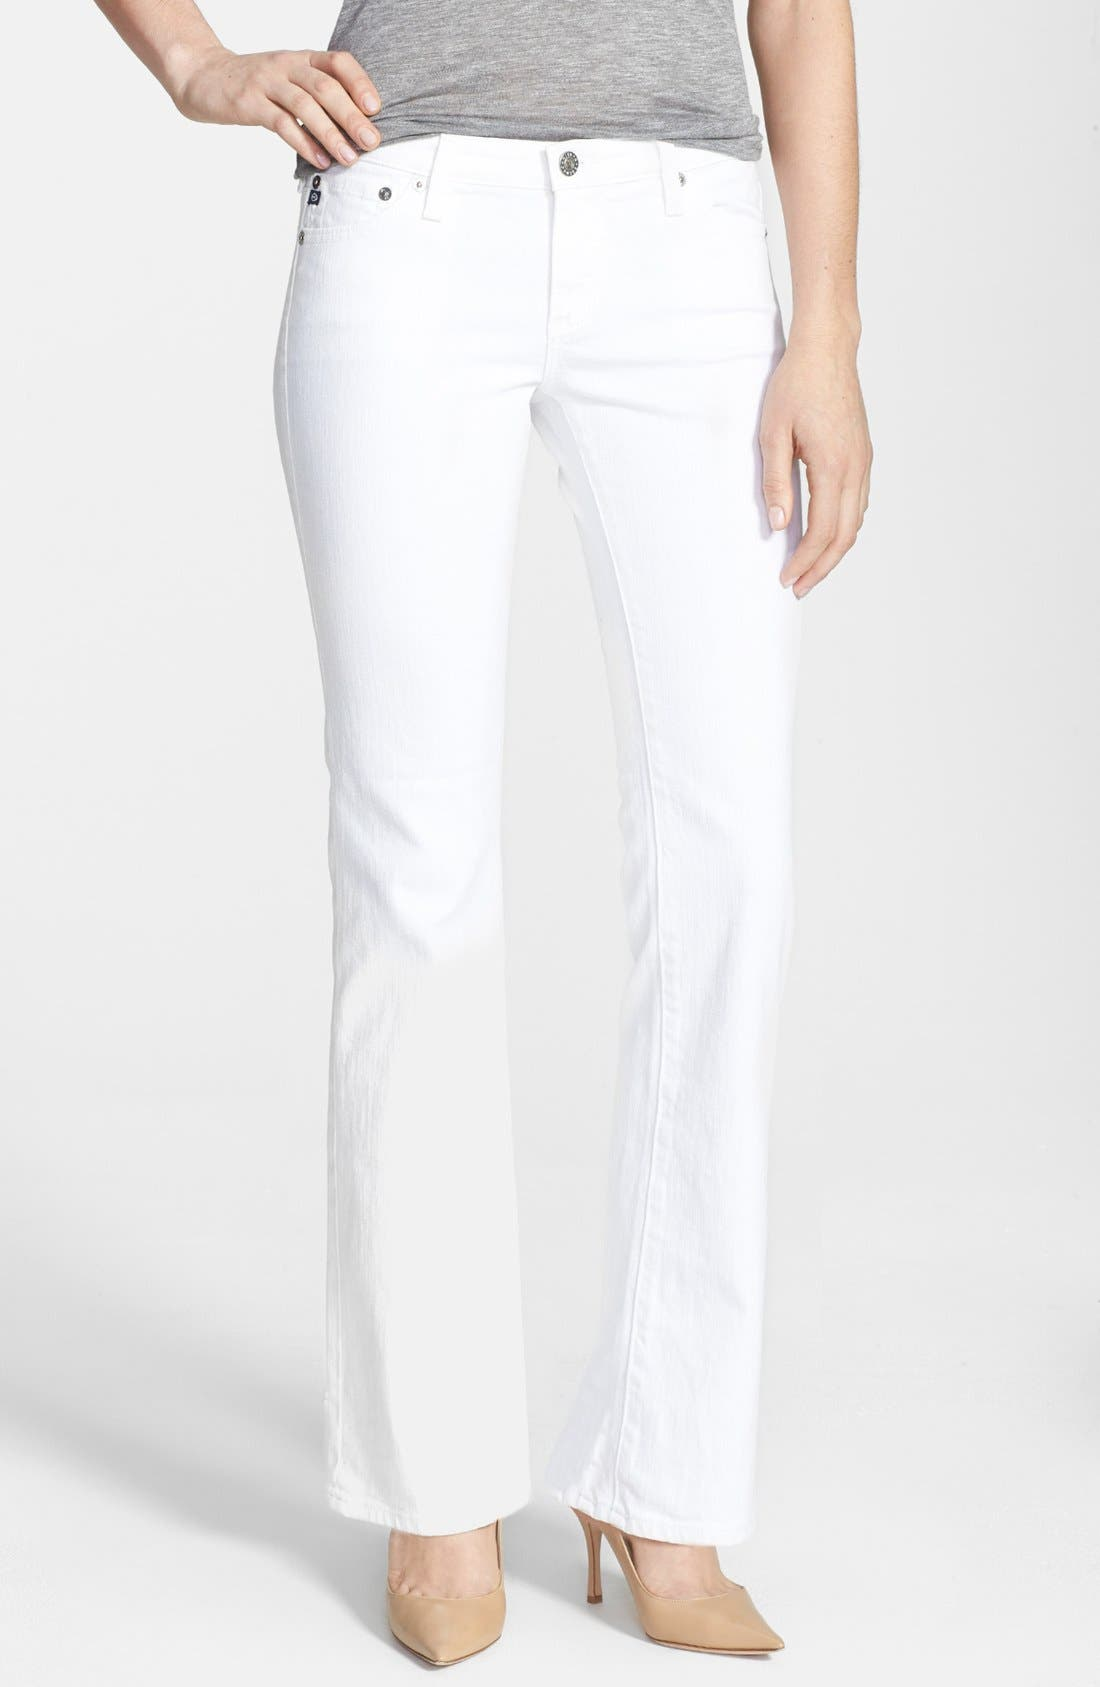 Alternate Image 1 Selected - AG 'Angelina' Bootcut Jeans (Petite) (White)